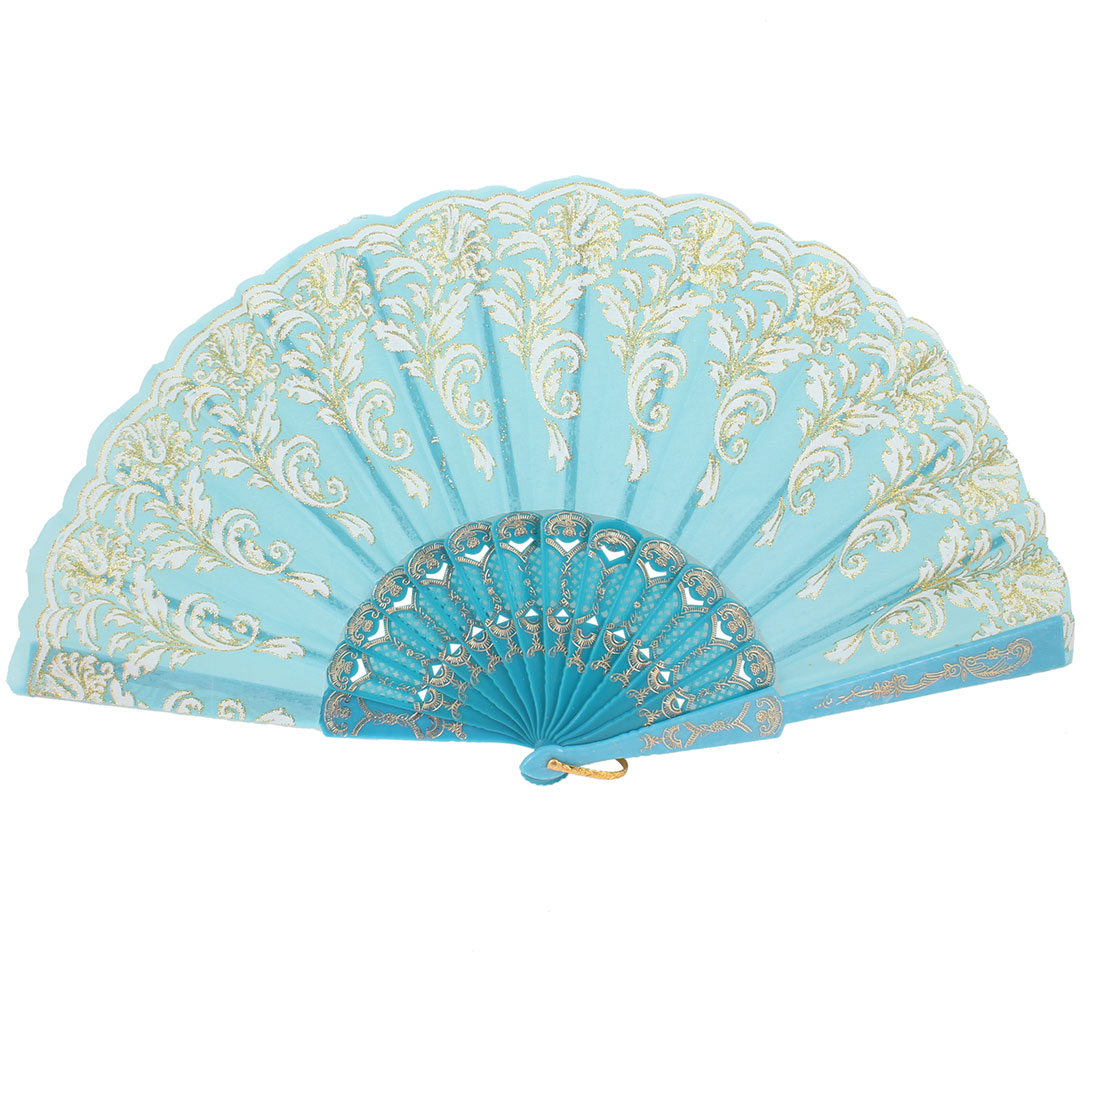 Chinese Characteristic Folding Hollow Out Frame Dodger Blue Hand Fan Portable